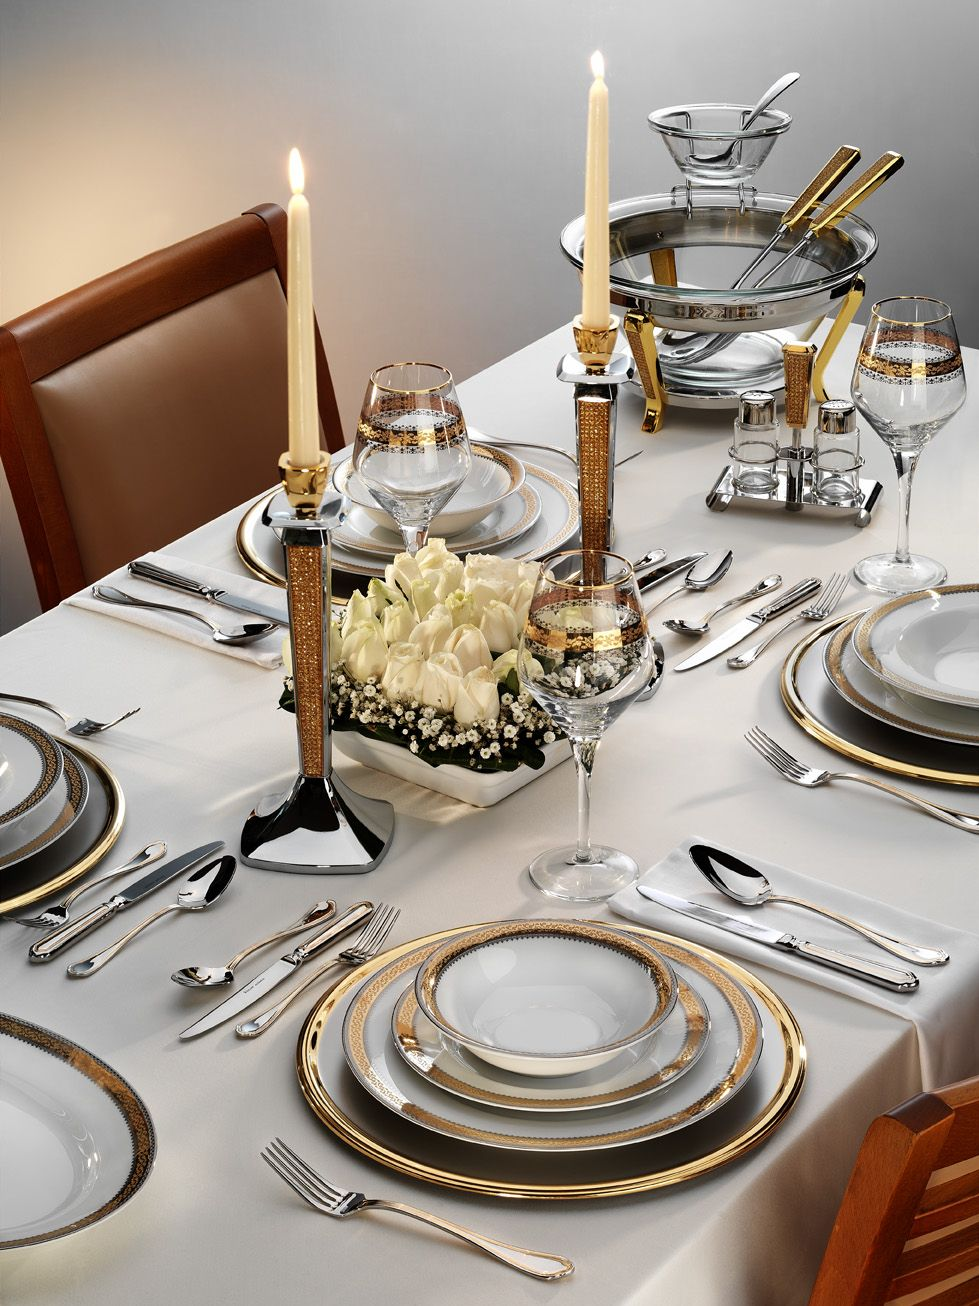 Hisar Art Of Dining Dining Table Accessories Dinner Table